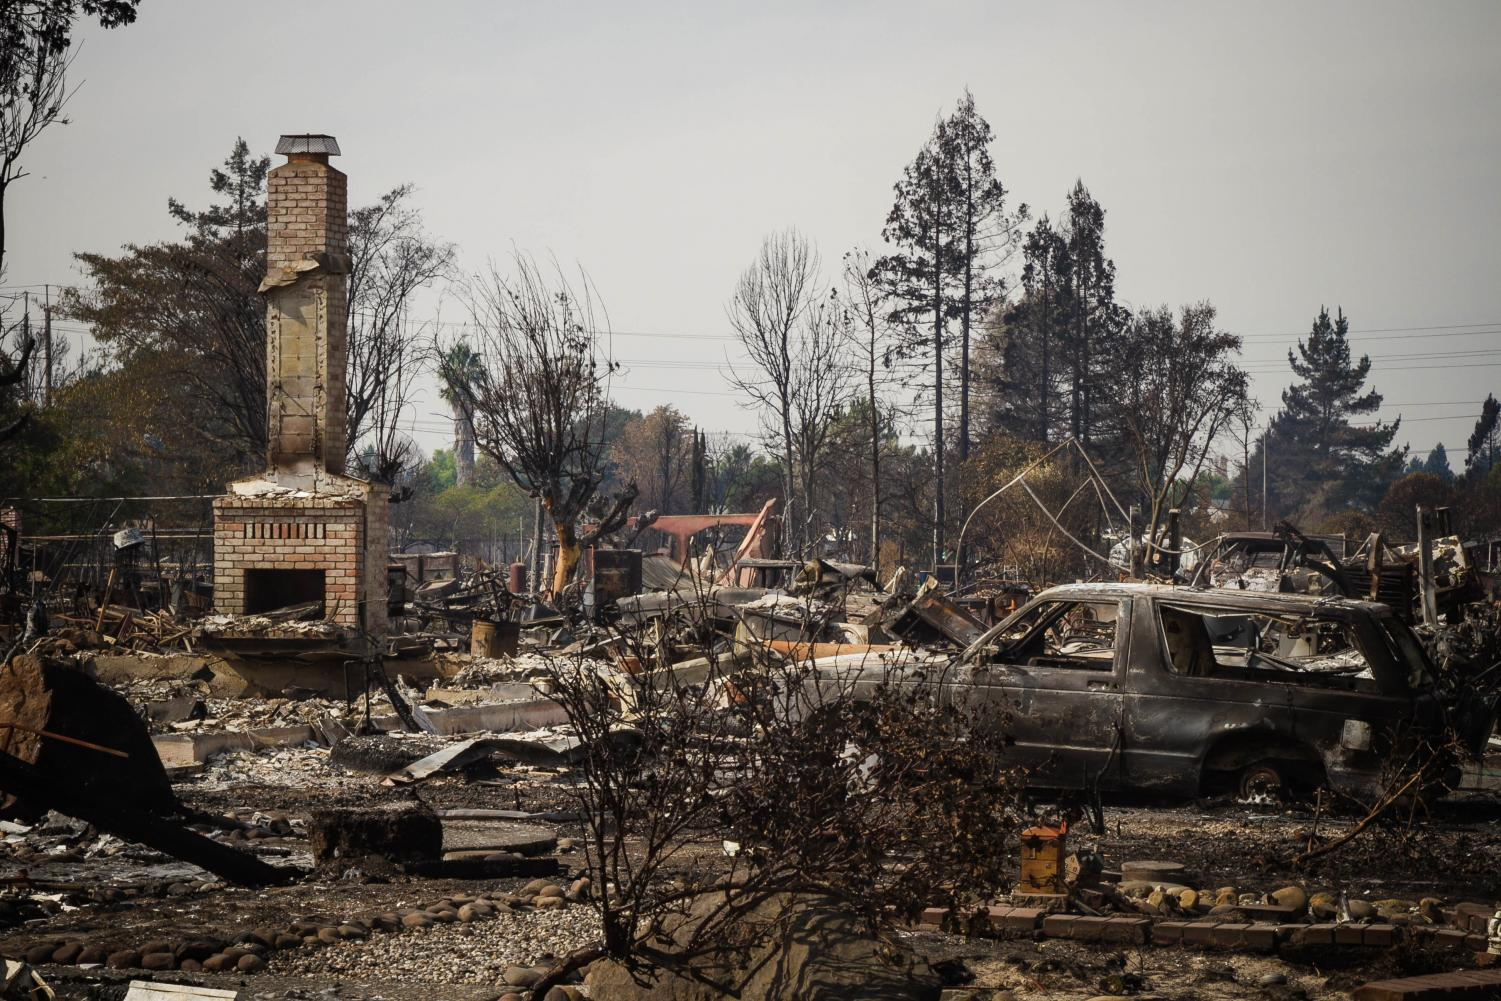 Remnants of a neighborhood in Santa Rosa, Calif., where wildfires ravaged through the town. (Sgt. 1st Class Benjamin Cosse, California National Guard/Creative Commons)